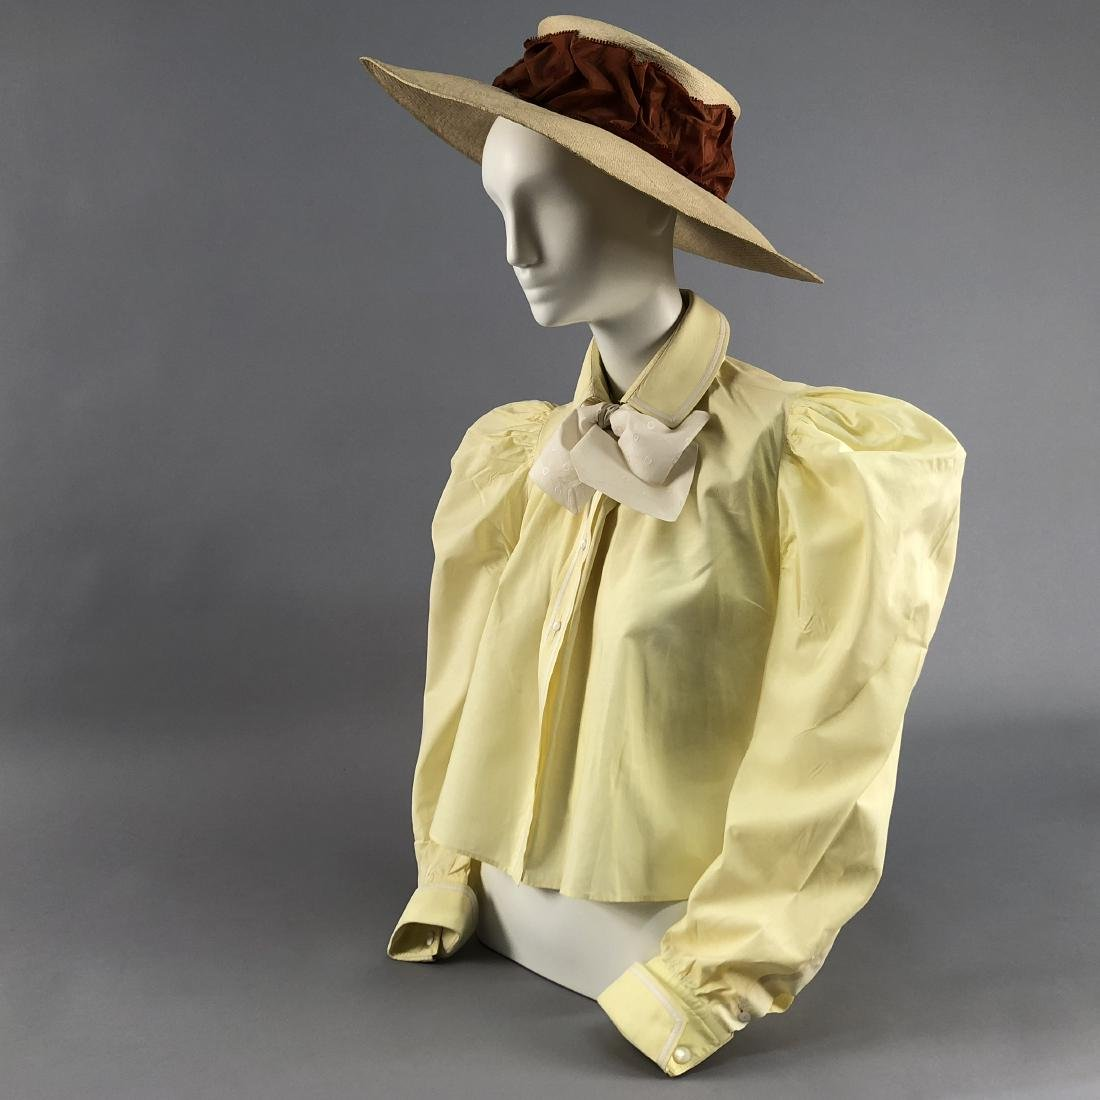 COTTON BLOUSE, 1895 - 1897, worn by KATHERINE HEPBURN